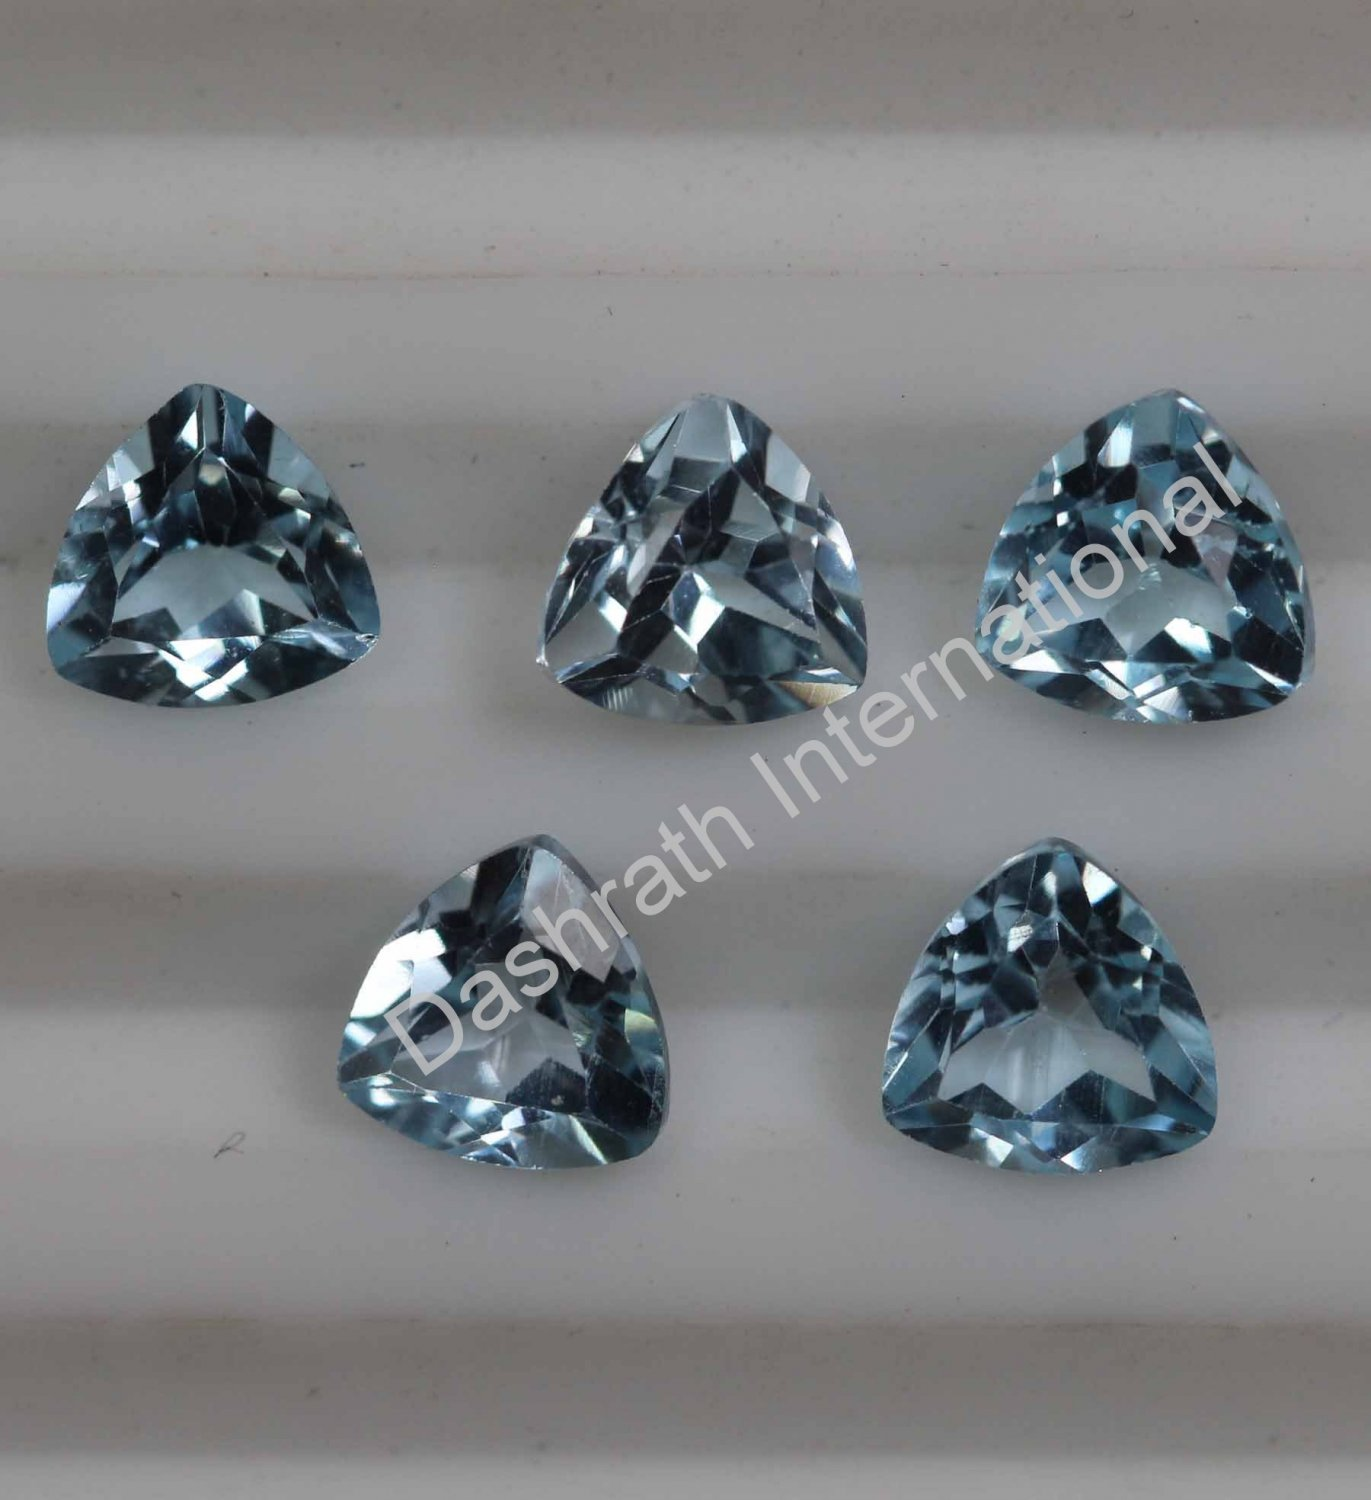 3mm Natural Sky Blue Topaz Faceted Cut Trillion 50 Pieces Lot Top Quality Loose Gemstone